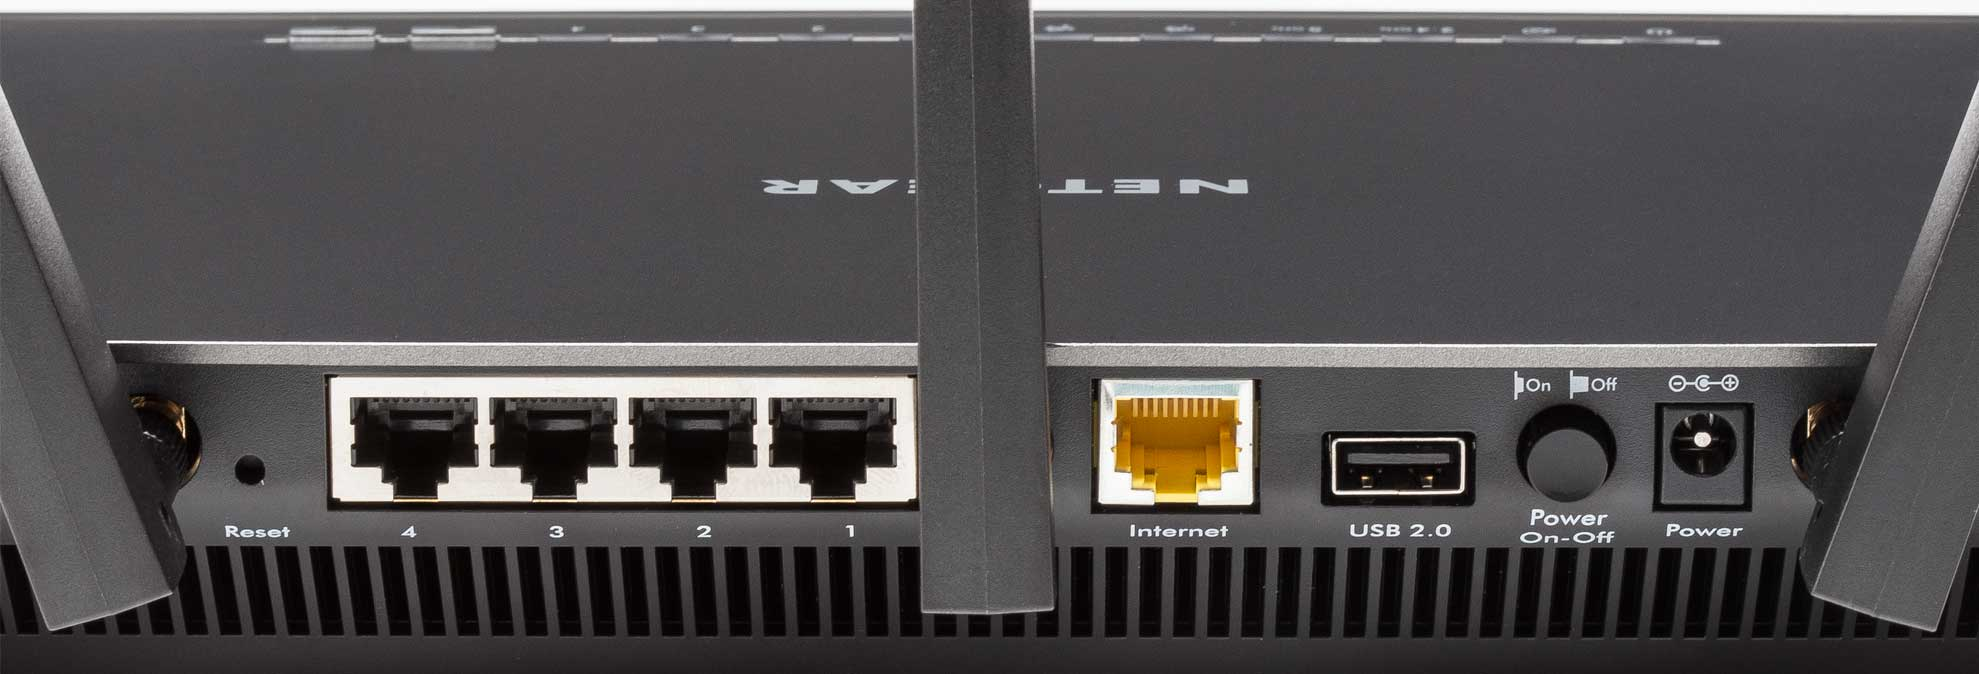 Major Security Flaw Found in Netgear Routers - Consumer Reports